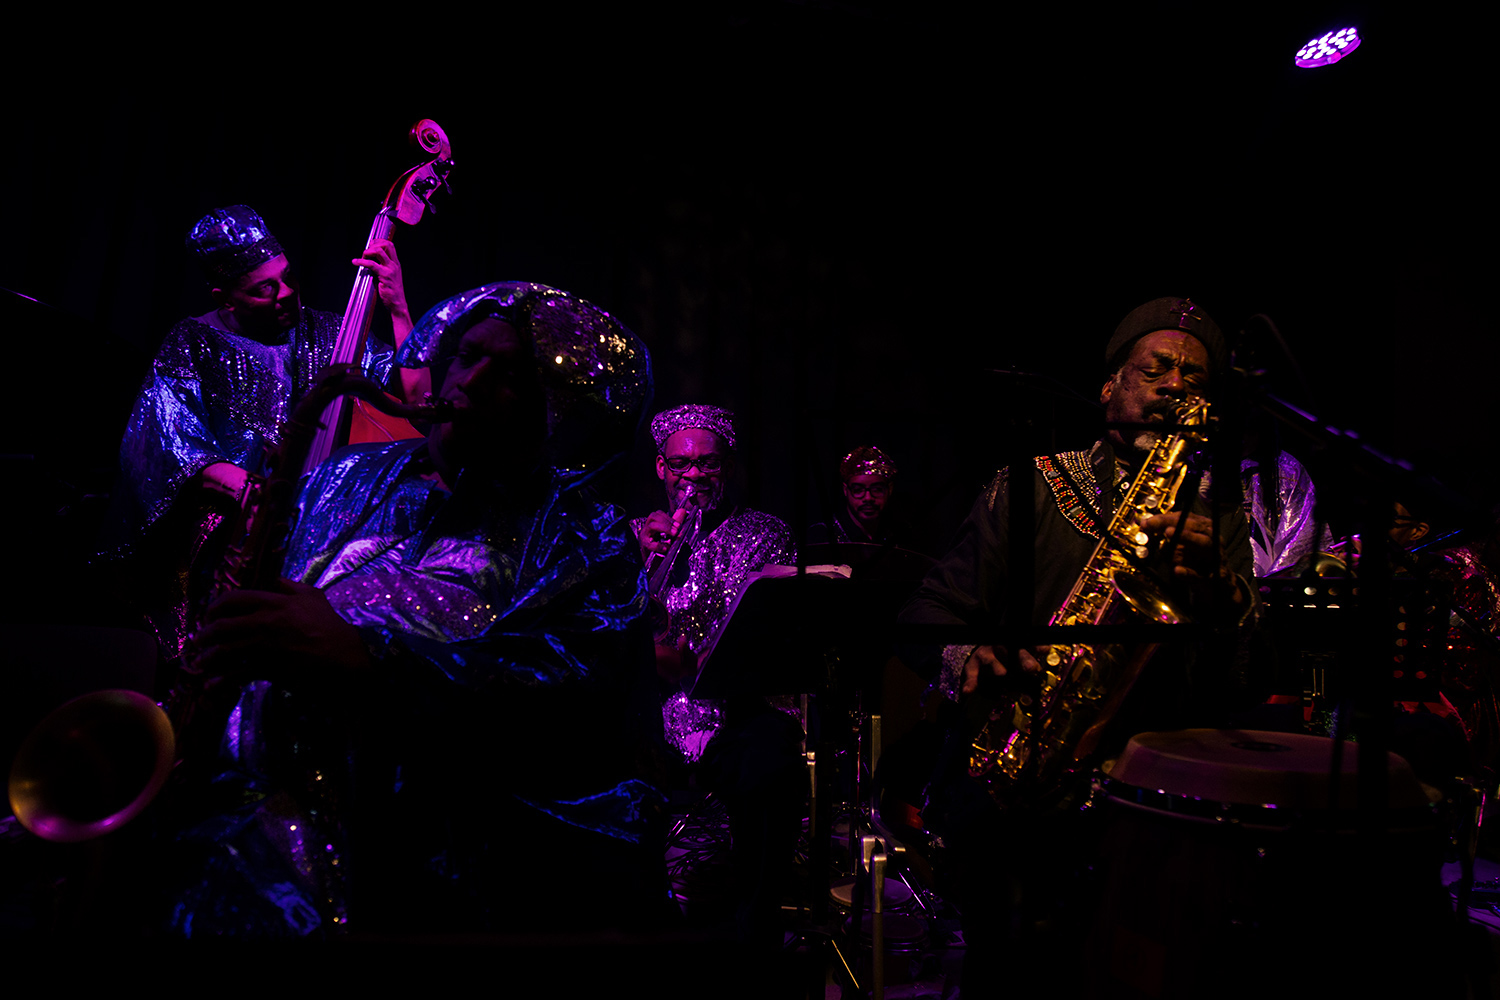 Sun Ra Arkestra directed by Marshall Allen by Laurent Orseau - Concert - Les Ateliers Claus - Brussels, Belgium #4